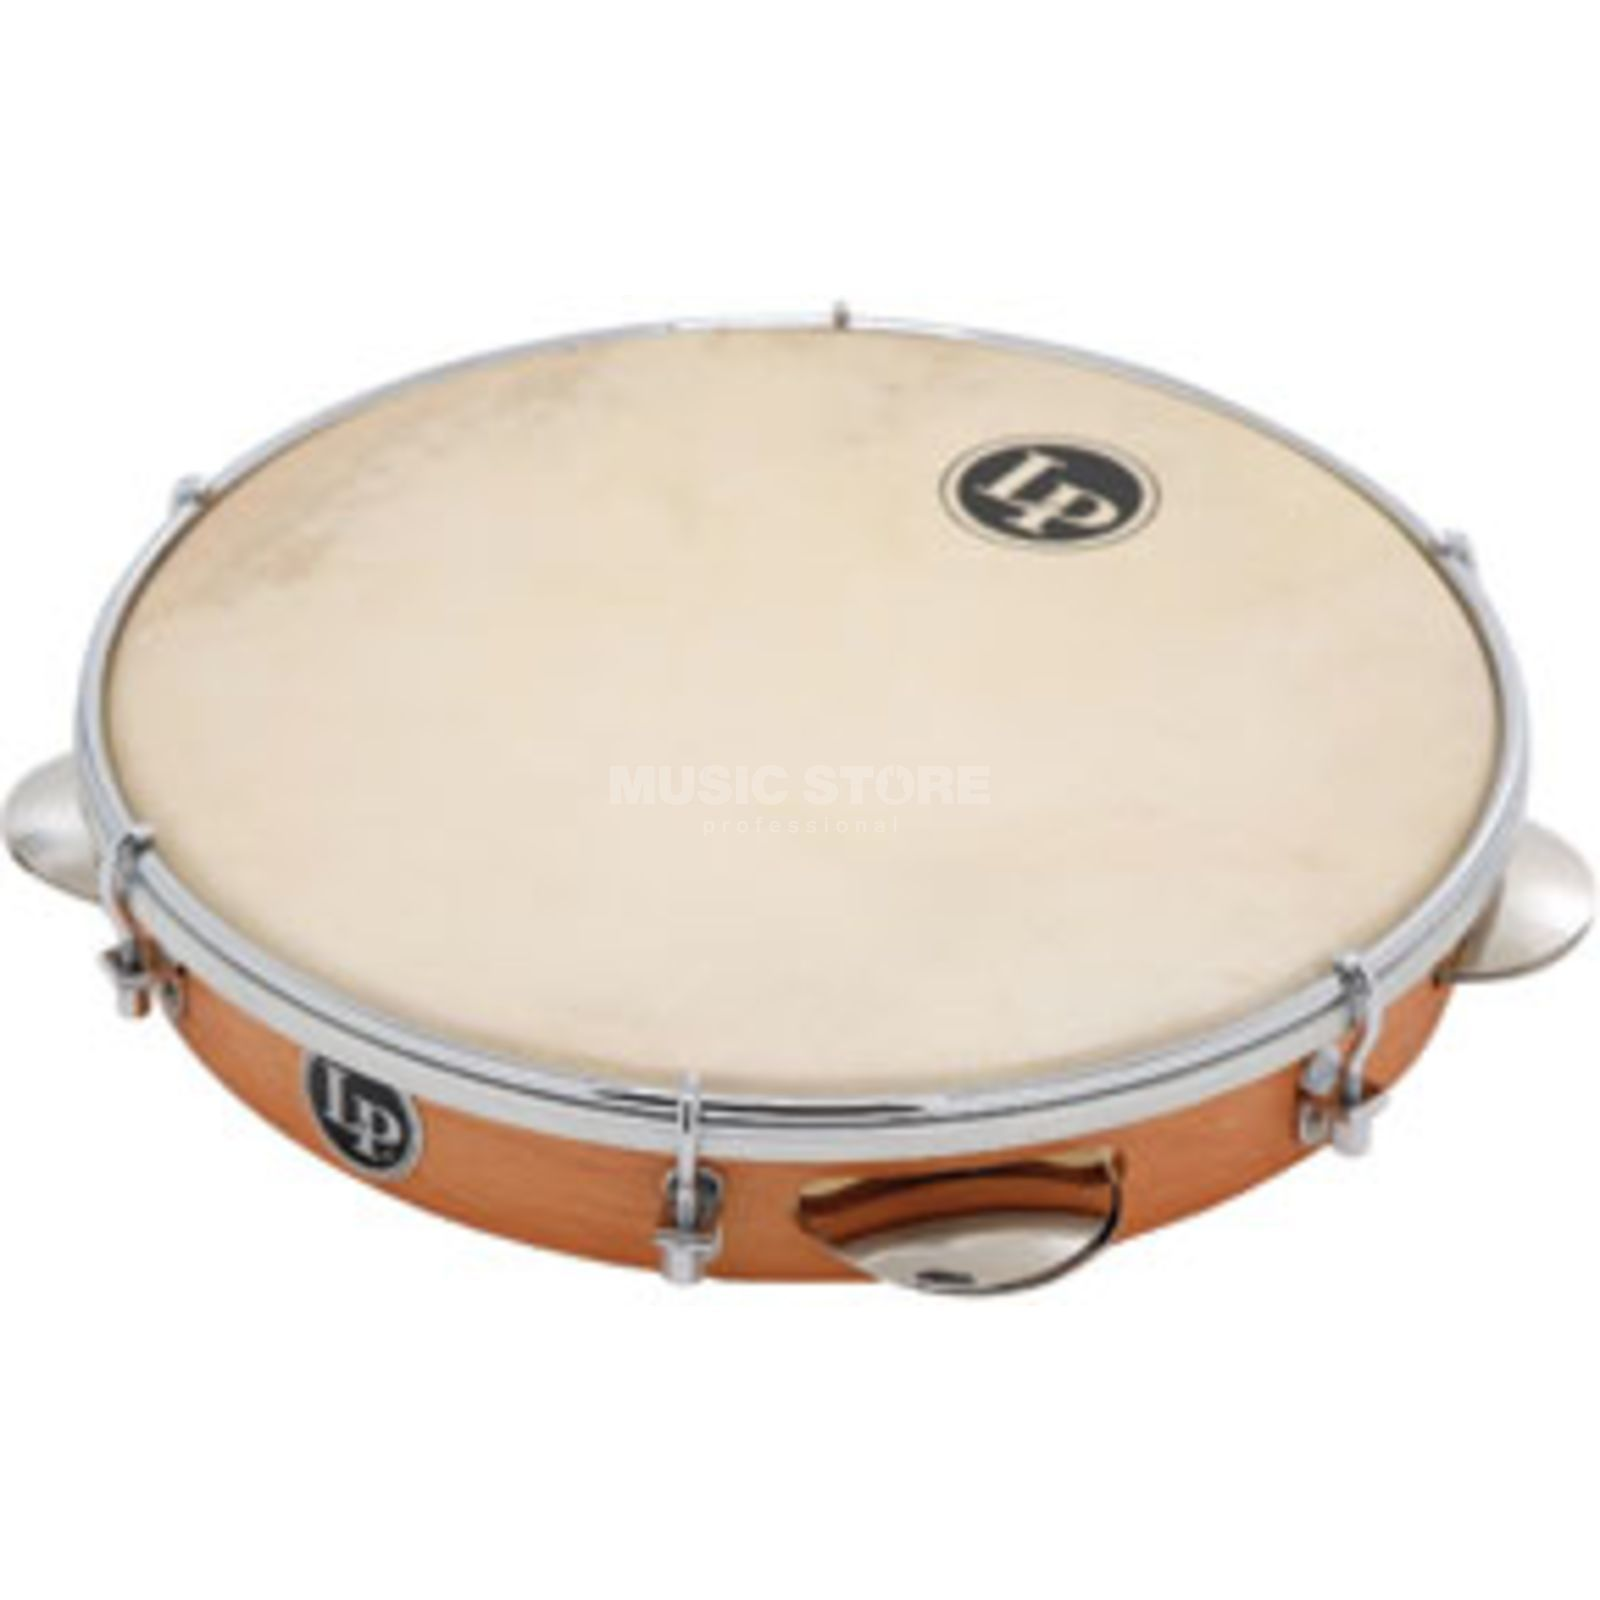 "Latin Percussion Pandeiro Rio 10"" LP3010N, Wood Produktbild"